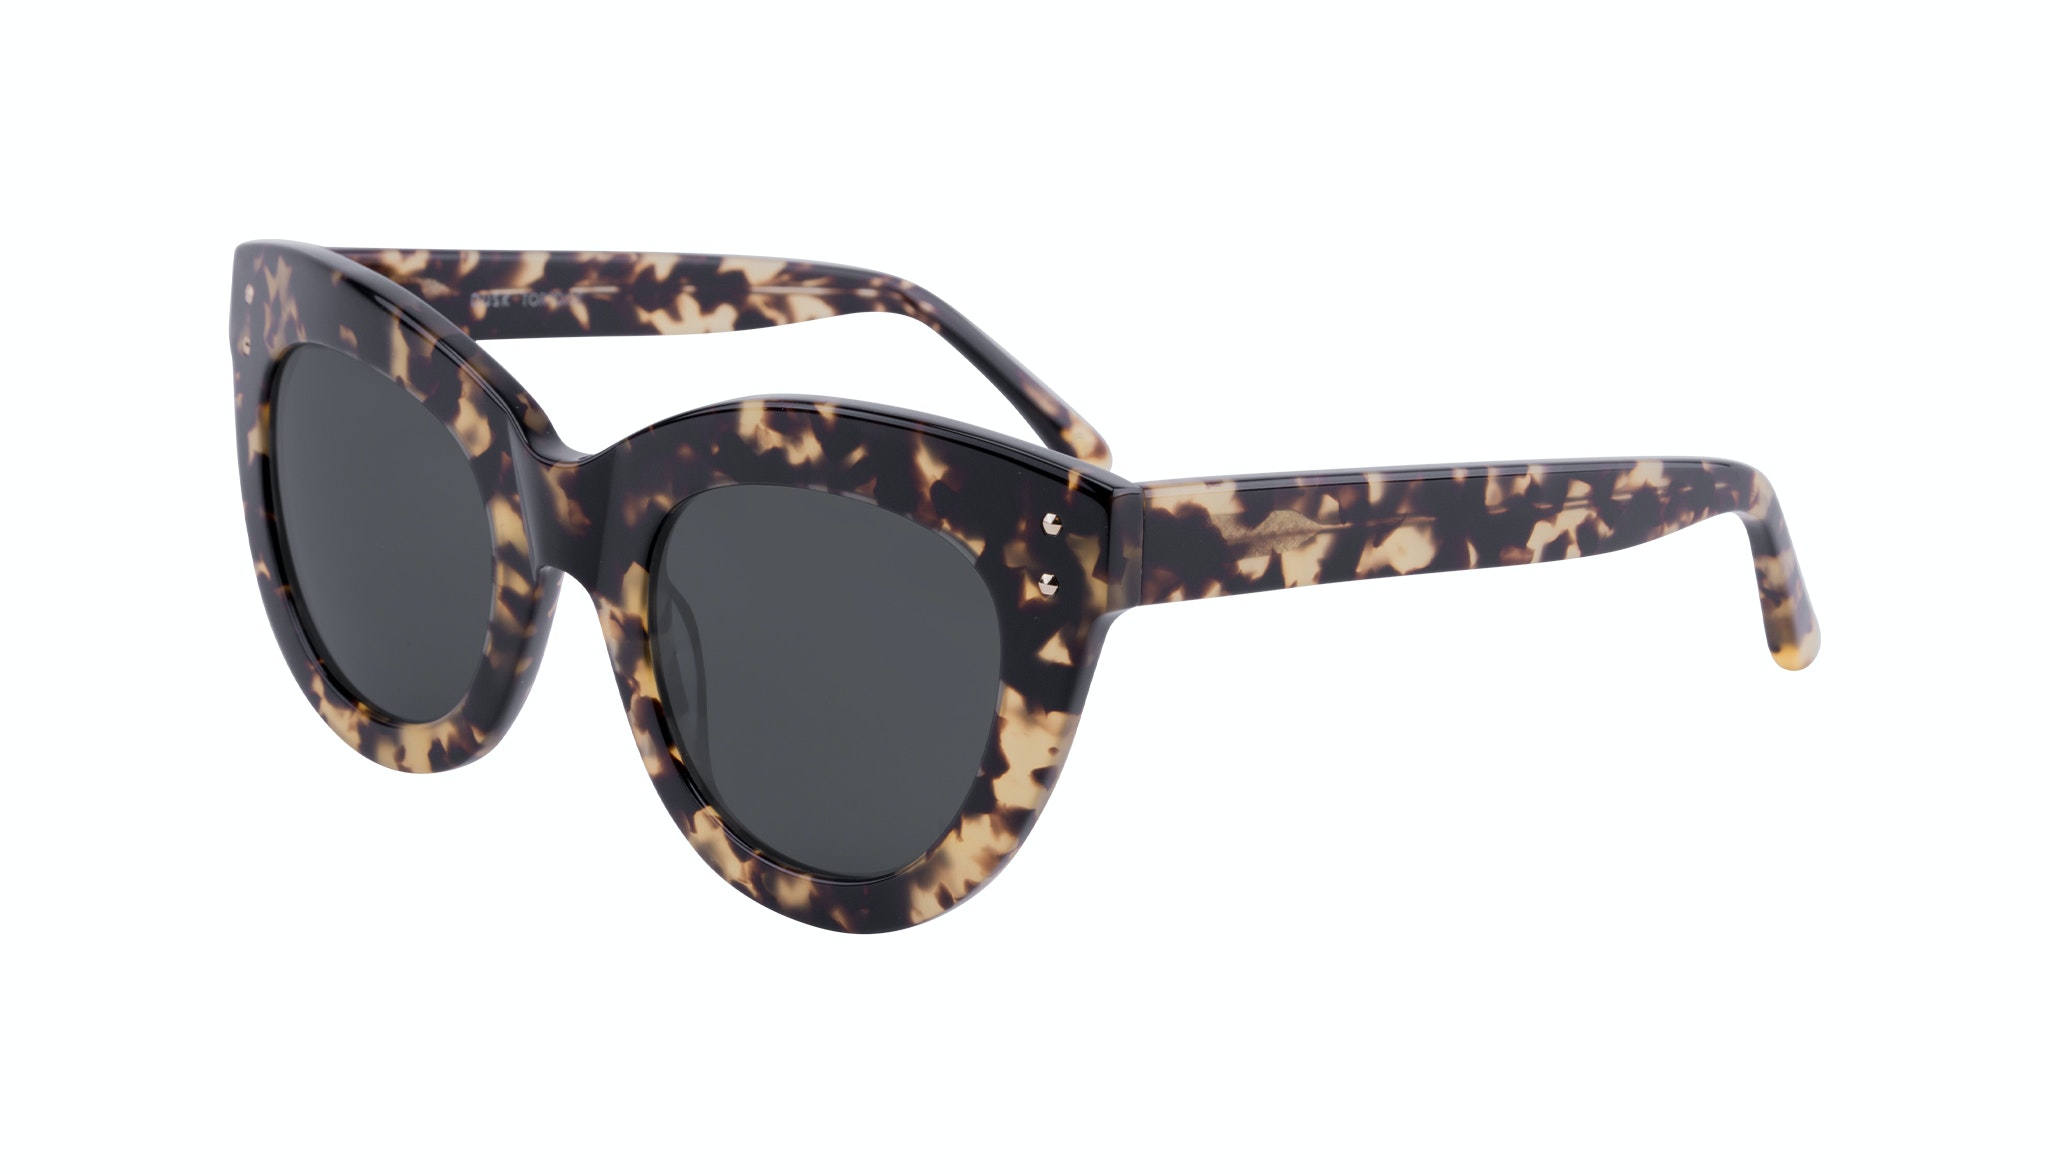 Affordable Fashion Glasses Cat Eye Sunglasses Women Dusk Tortoise Tilt